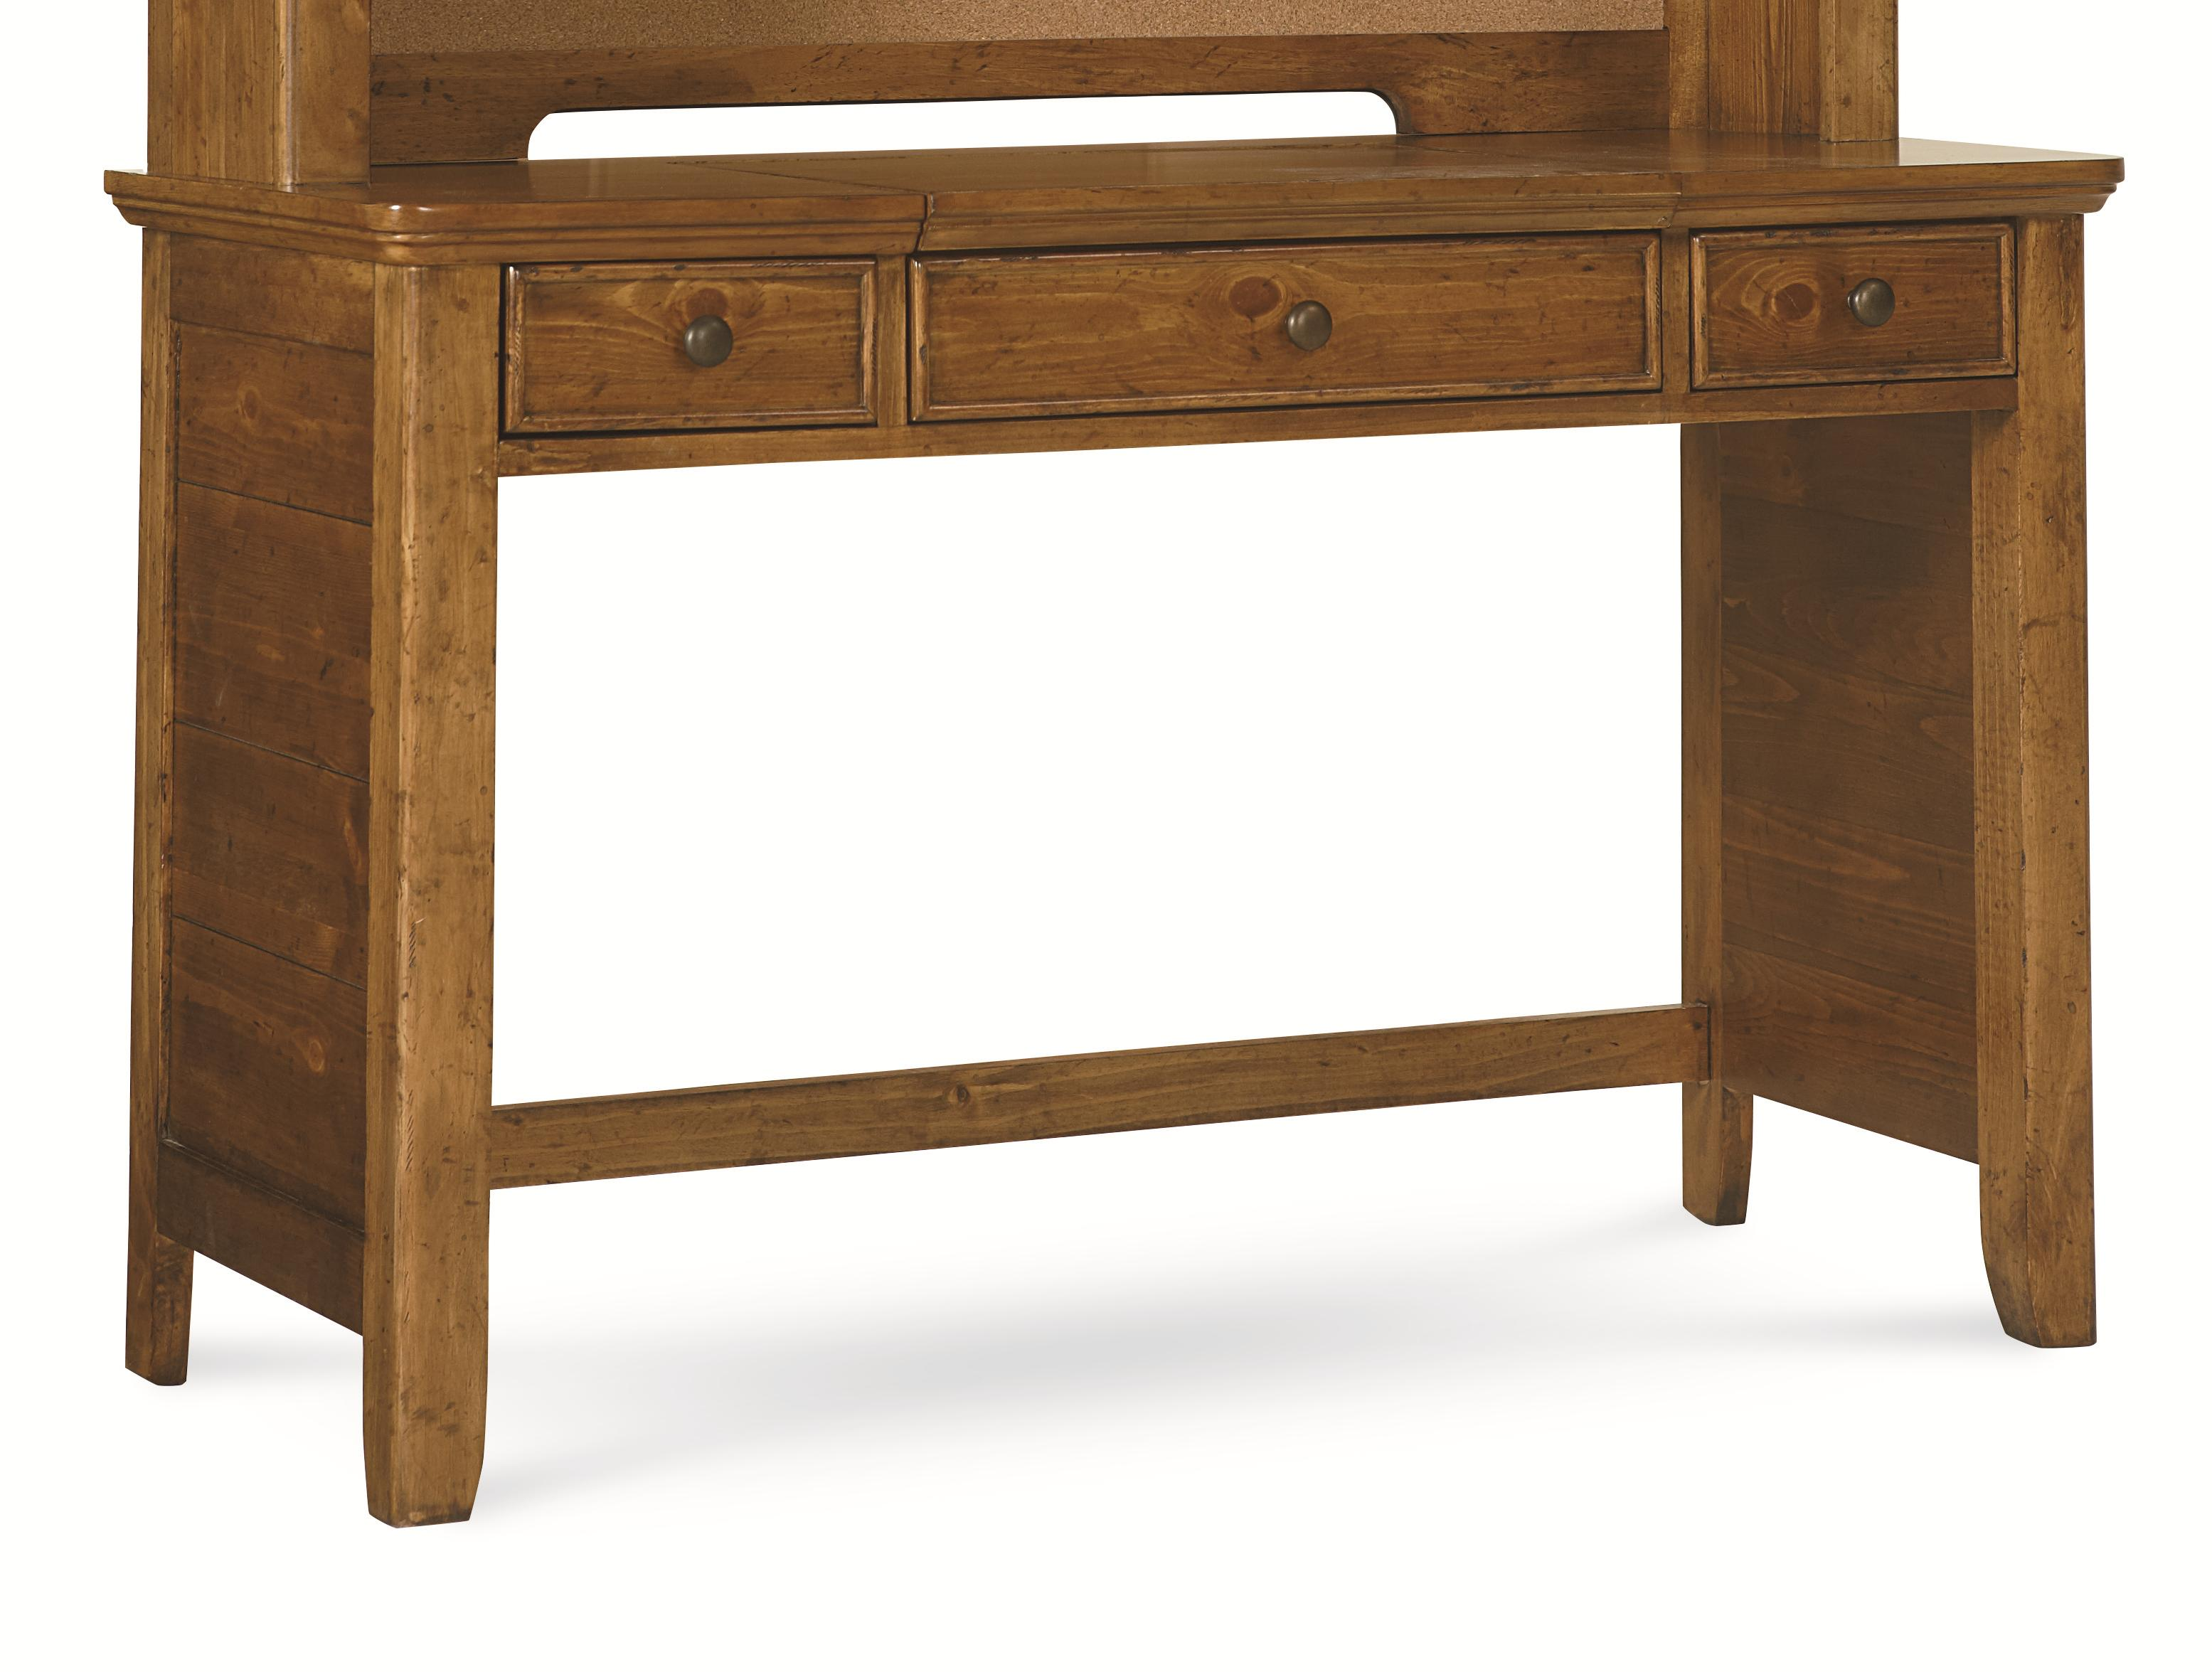 Legacy Classic Kids Bryce Canyon Table Desk with 3 Drawers